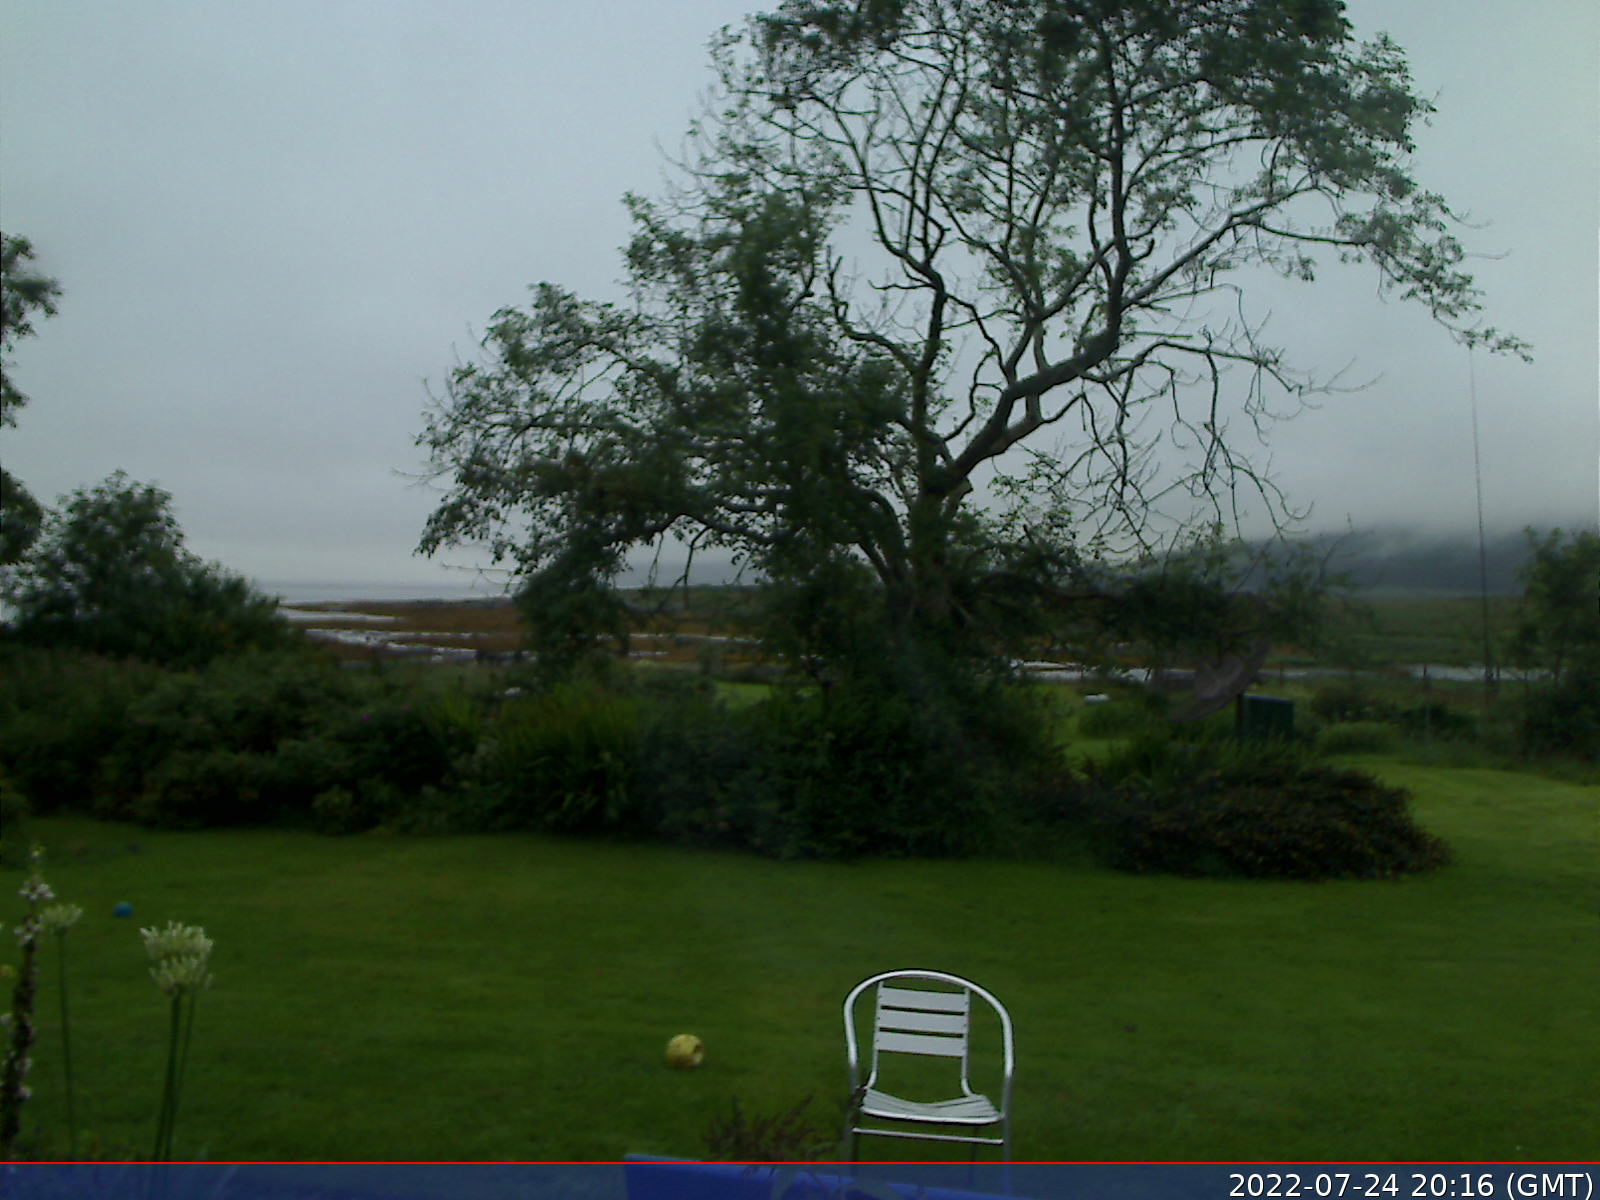 Isle of Mull, W Scotland - Webcam Image